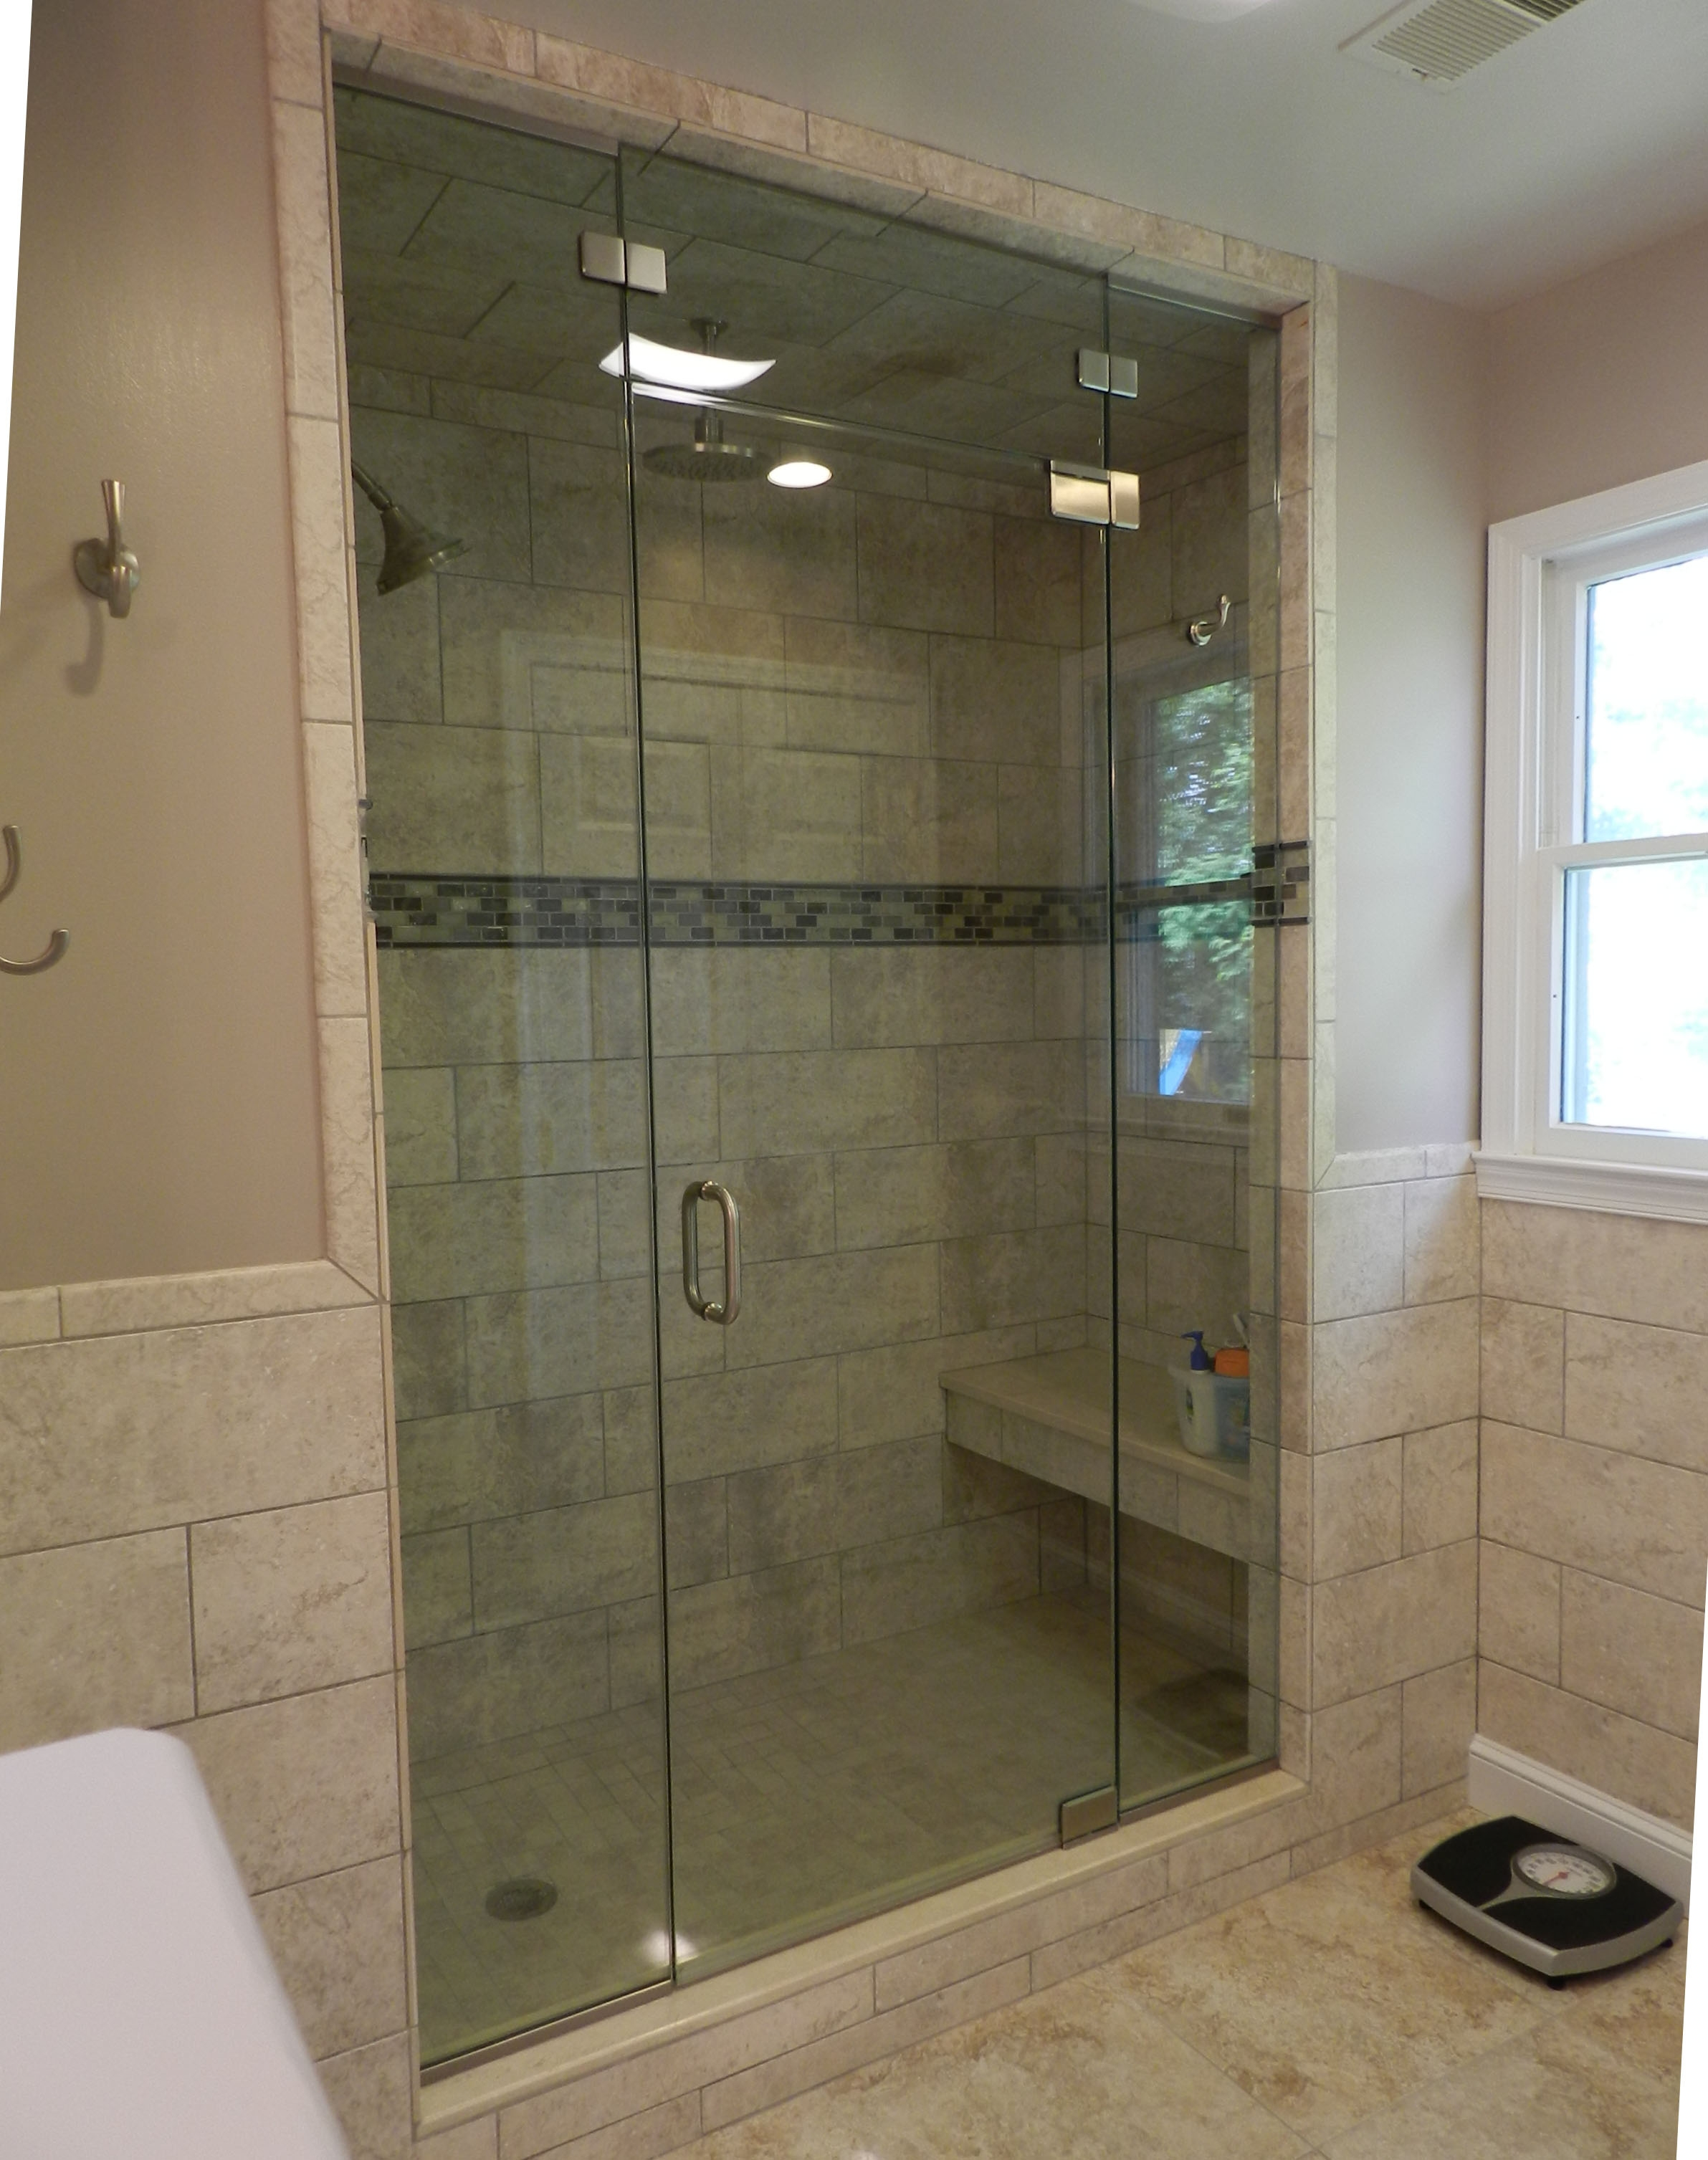 Steam Shower Doors Glass Frameless Doors Ideas